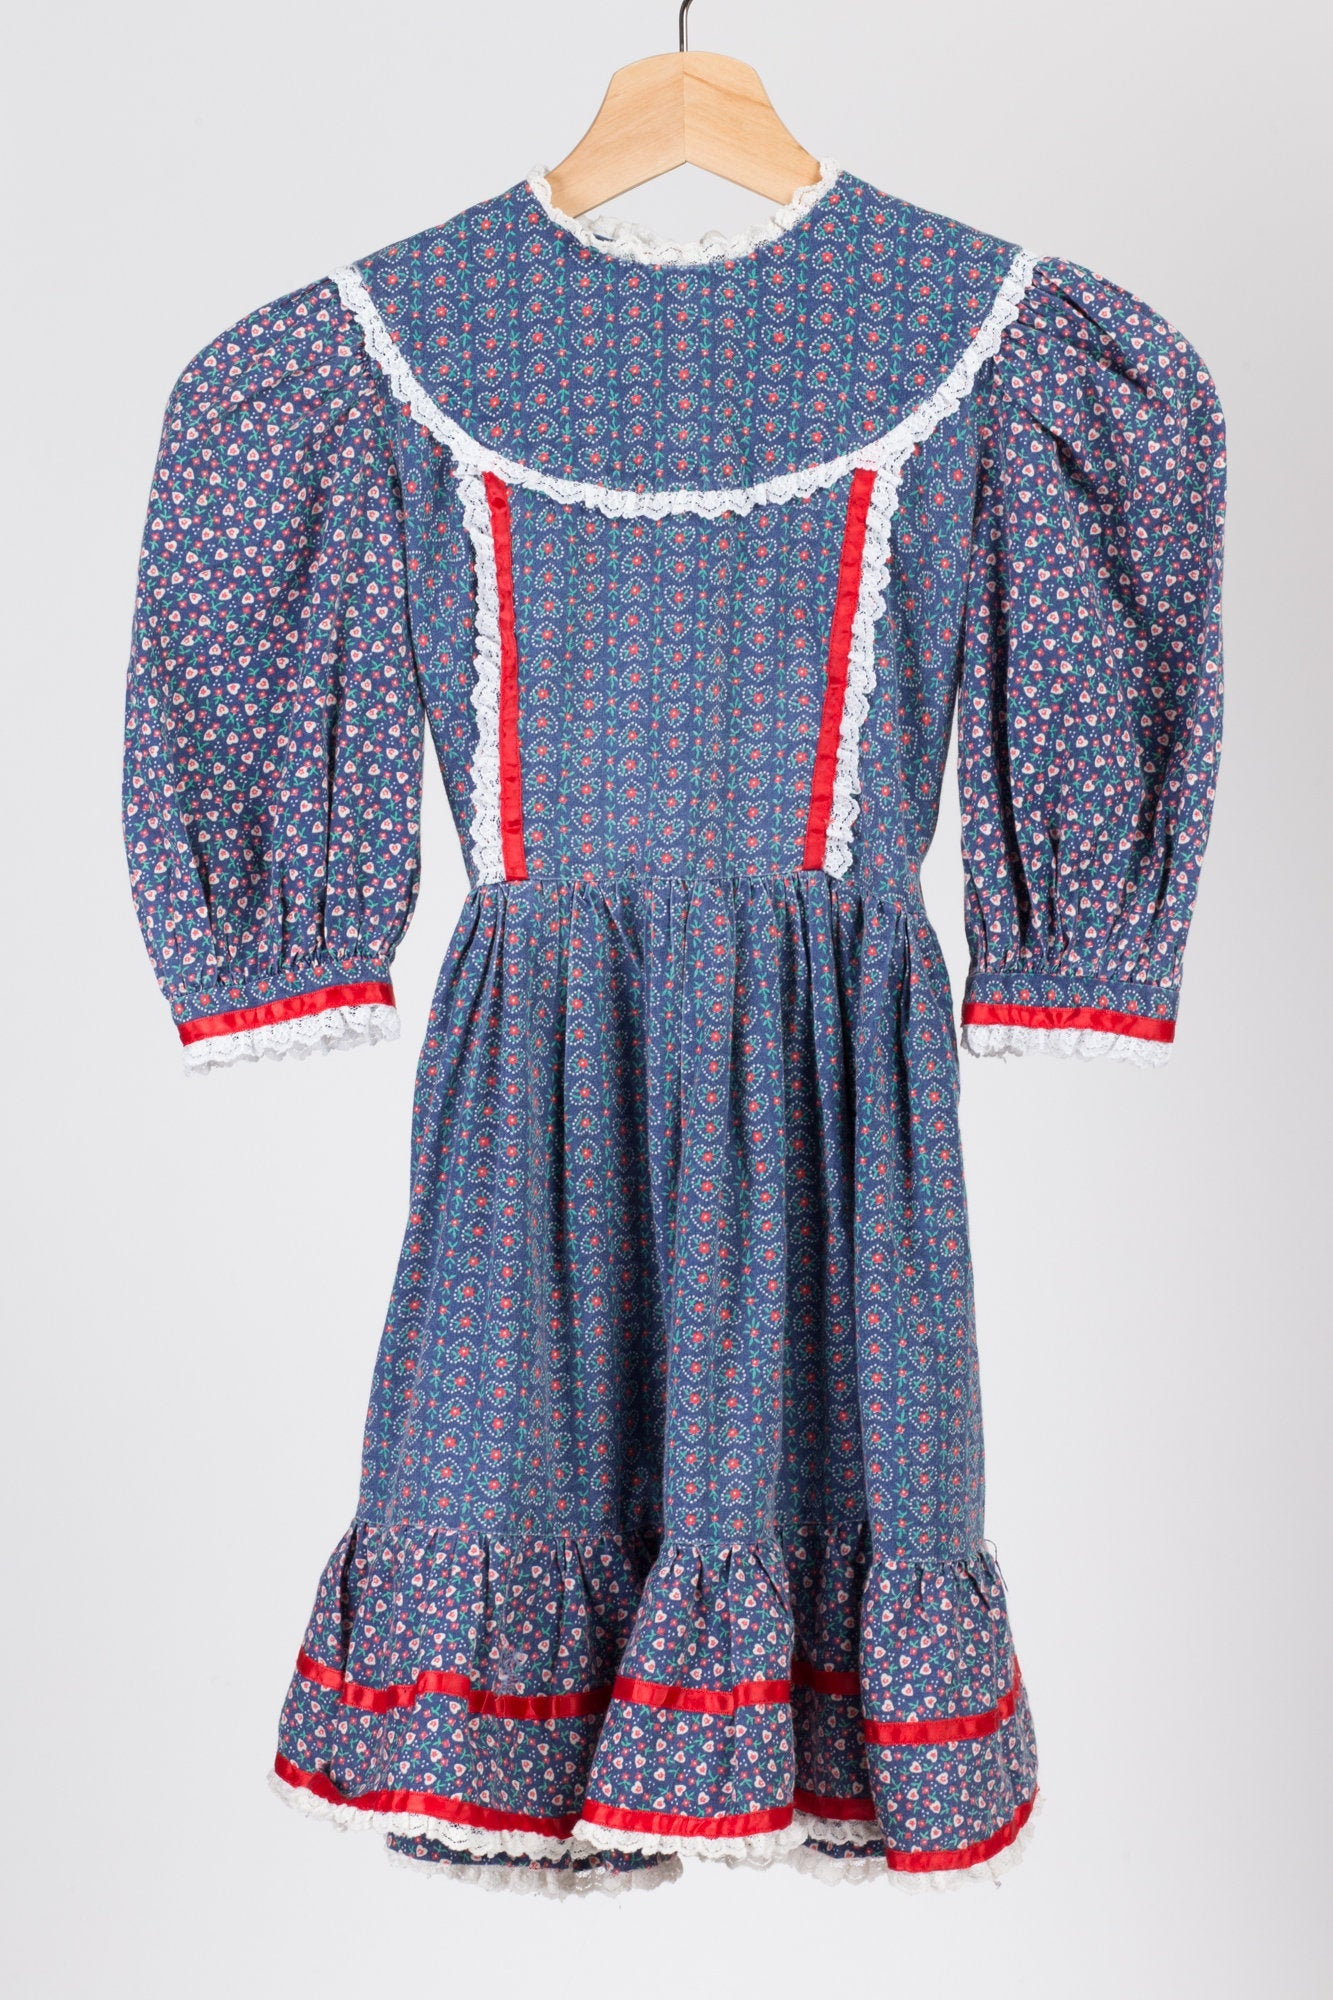 60s 70s Girl's Floral Heart Print Dress - Small